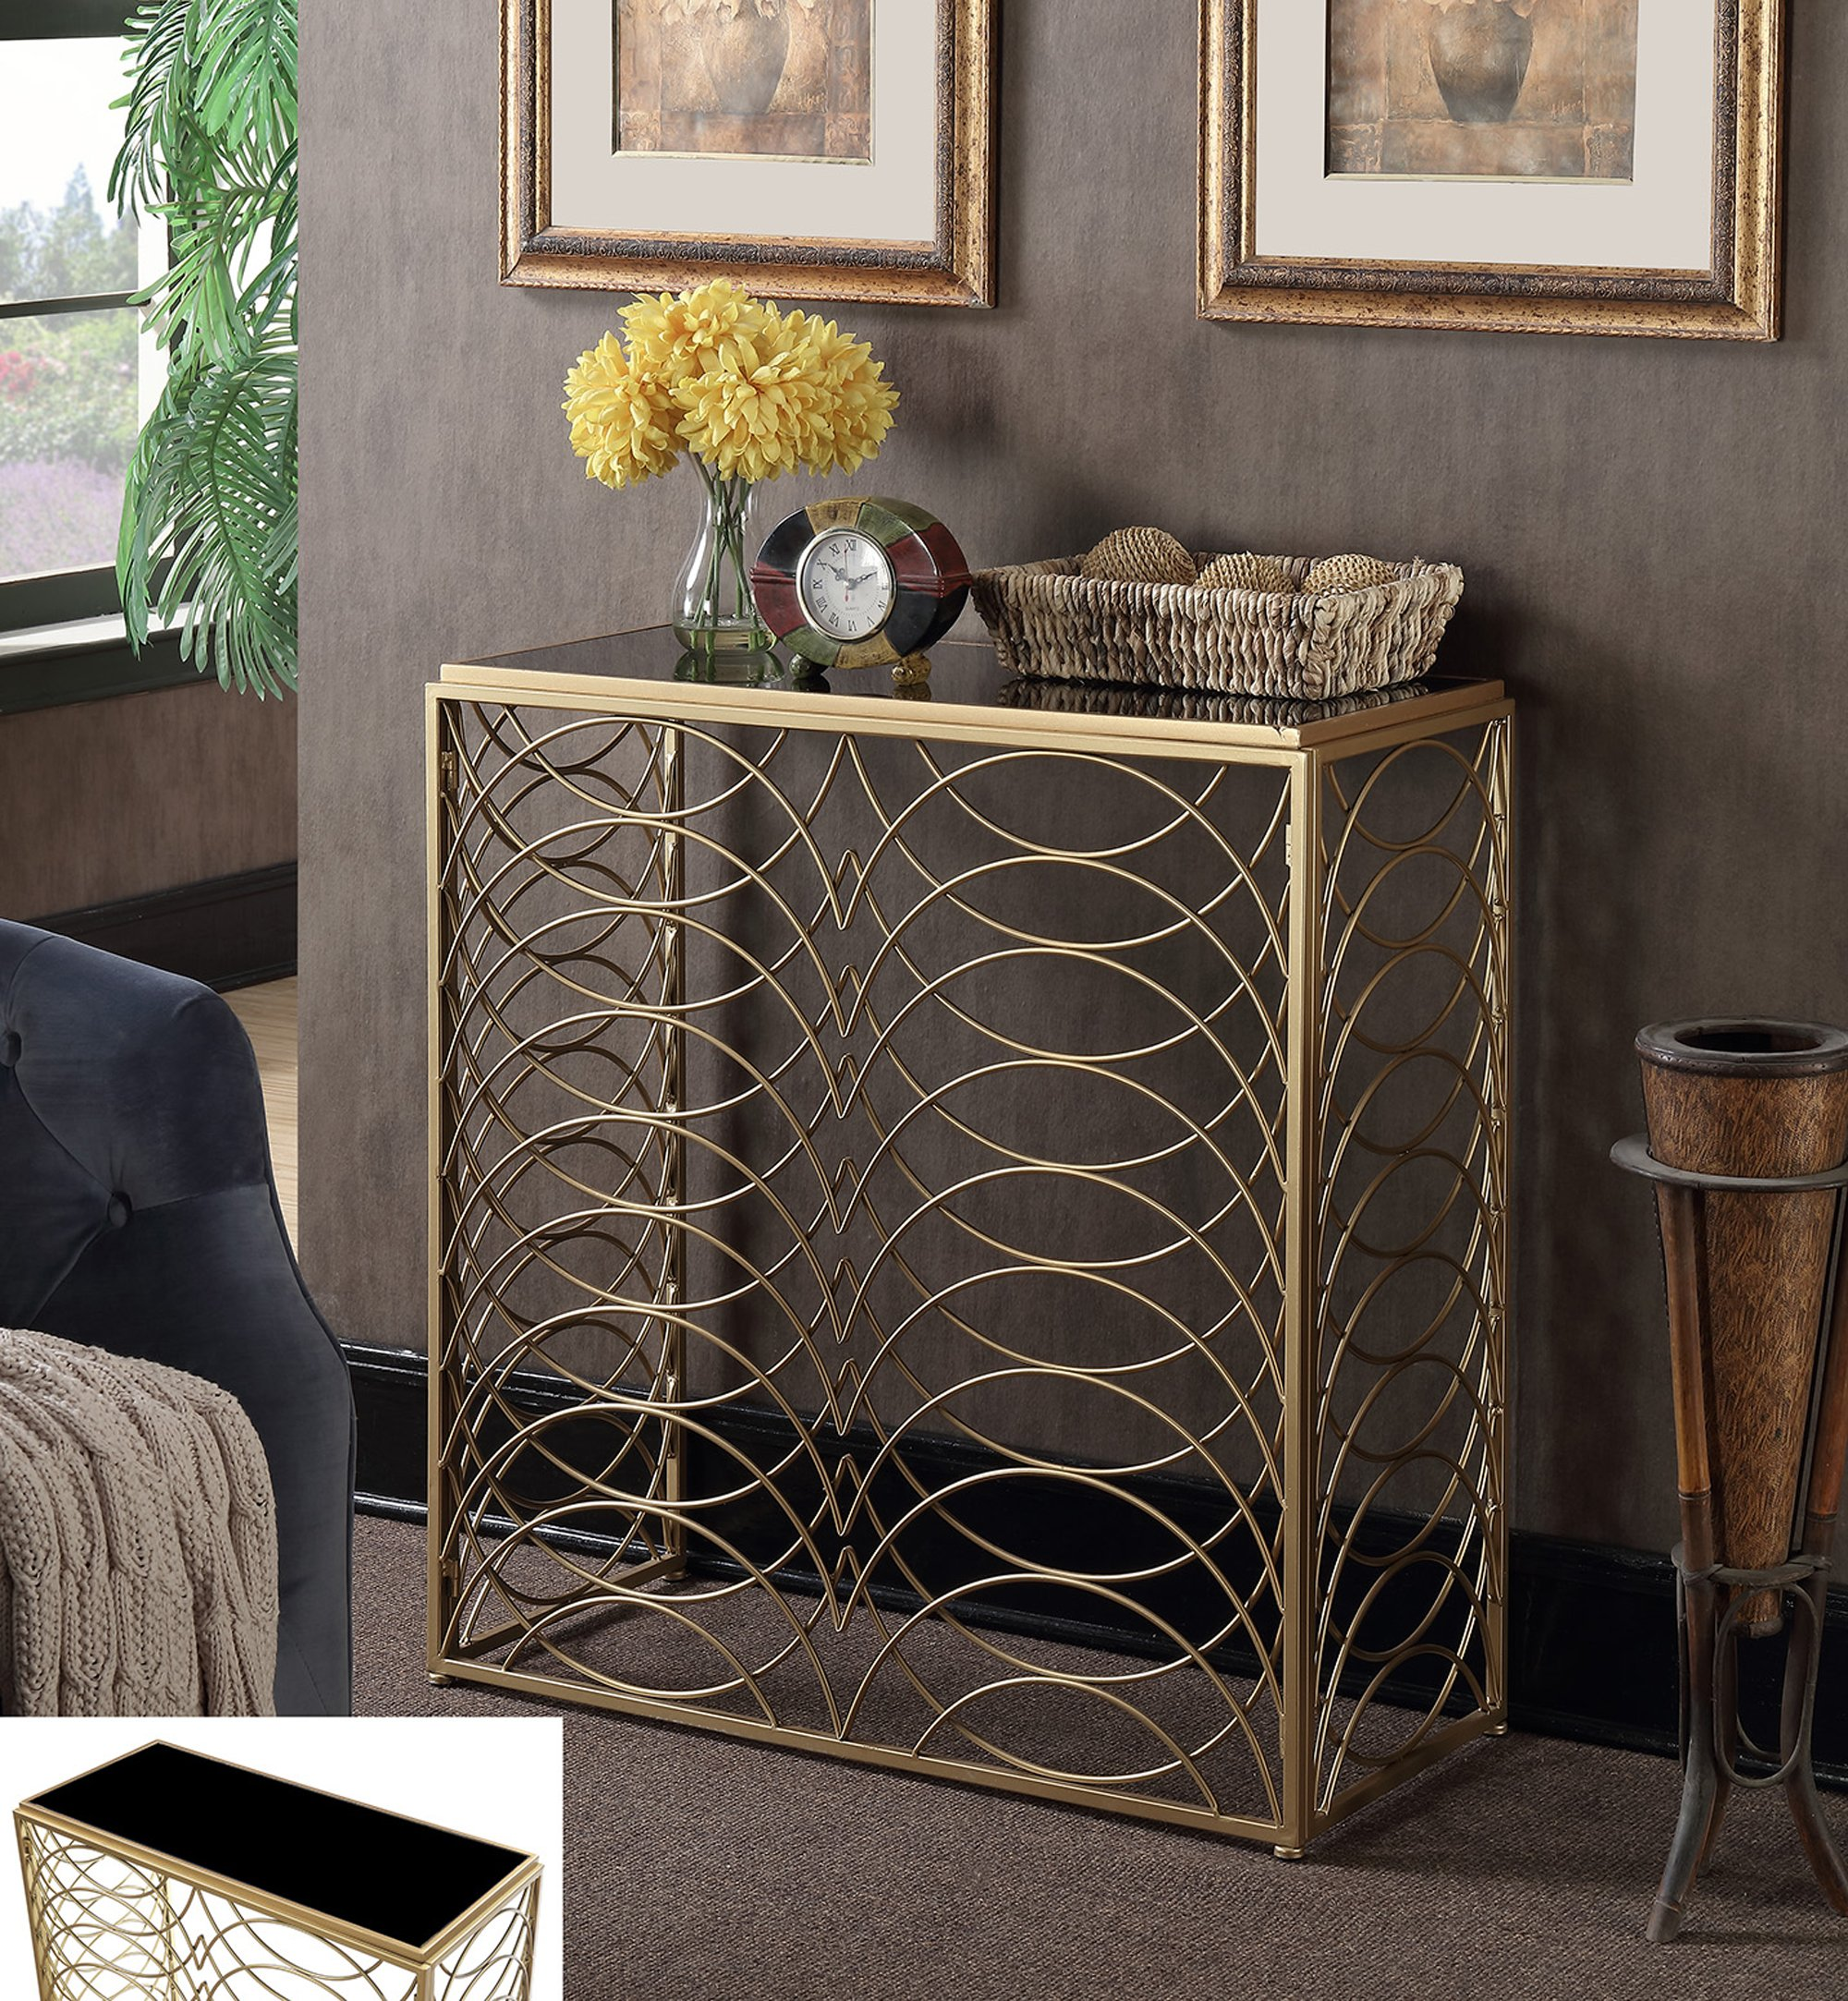 Convenience Concepts Gold Coast Tranquility Console Table, Gold / Black Glass - Gold Coast collection Available in multiple finishes Intricate scroll work - living-room-furniture, living-room, end-tables - 91I2CGADOlL -